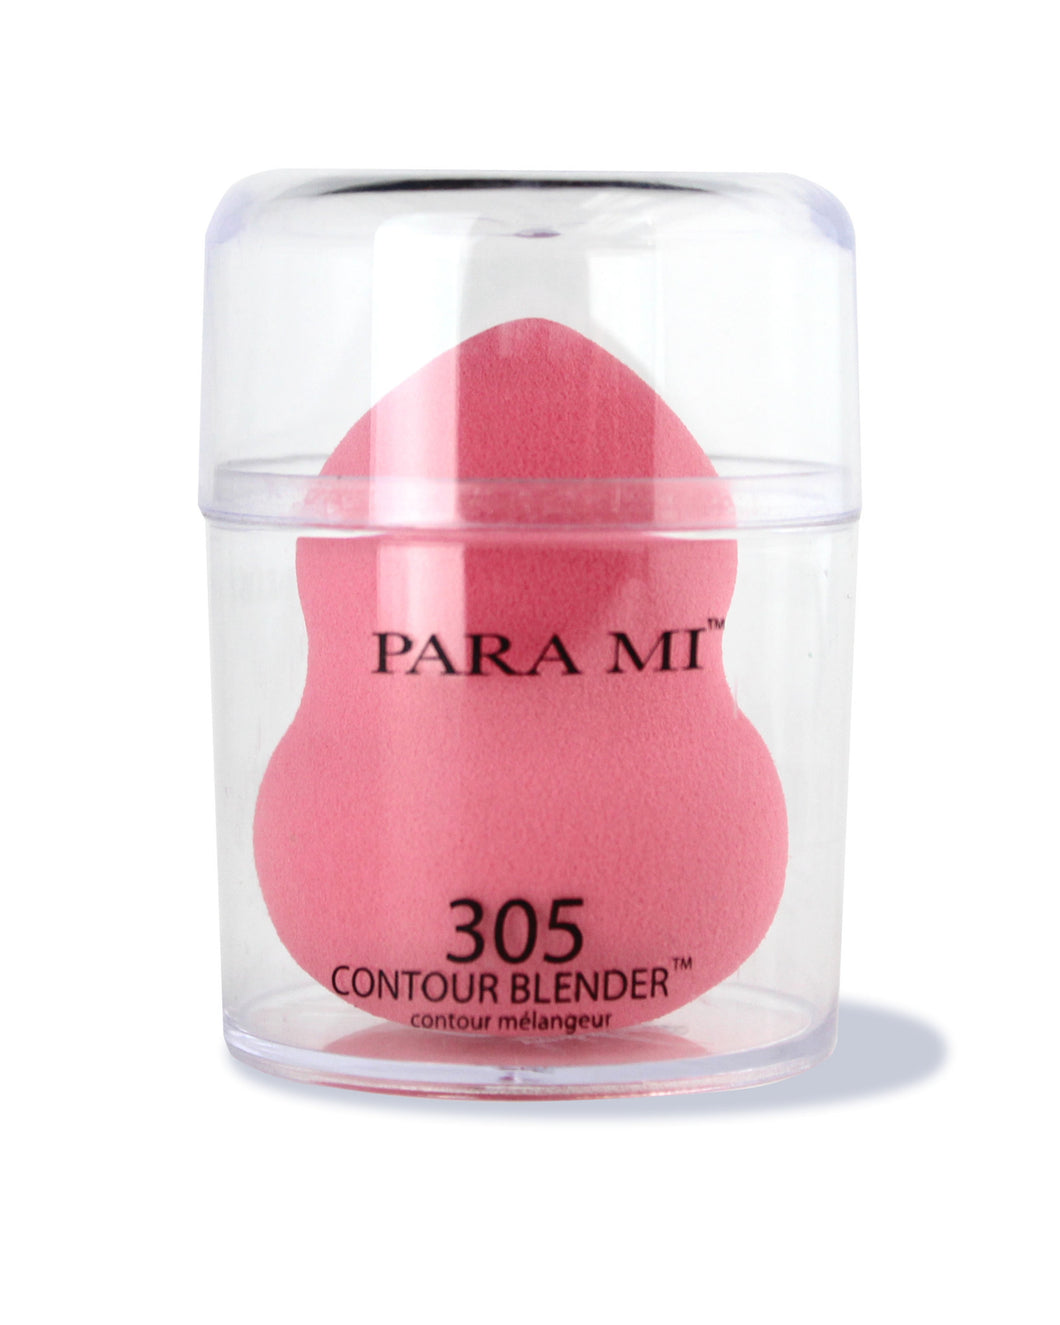 Para Mi - 305 Contour Blender, a pink teardrop shaped sponge inside a clear plastic container